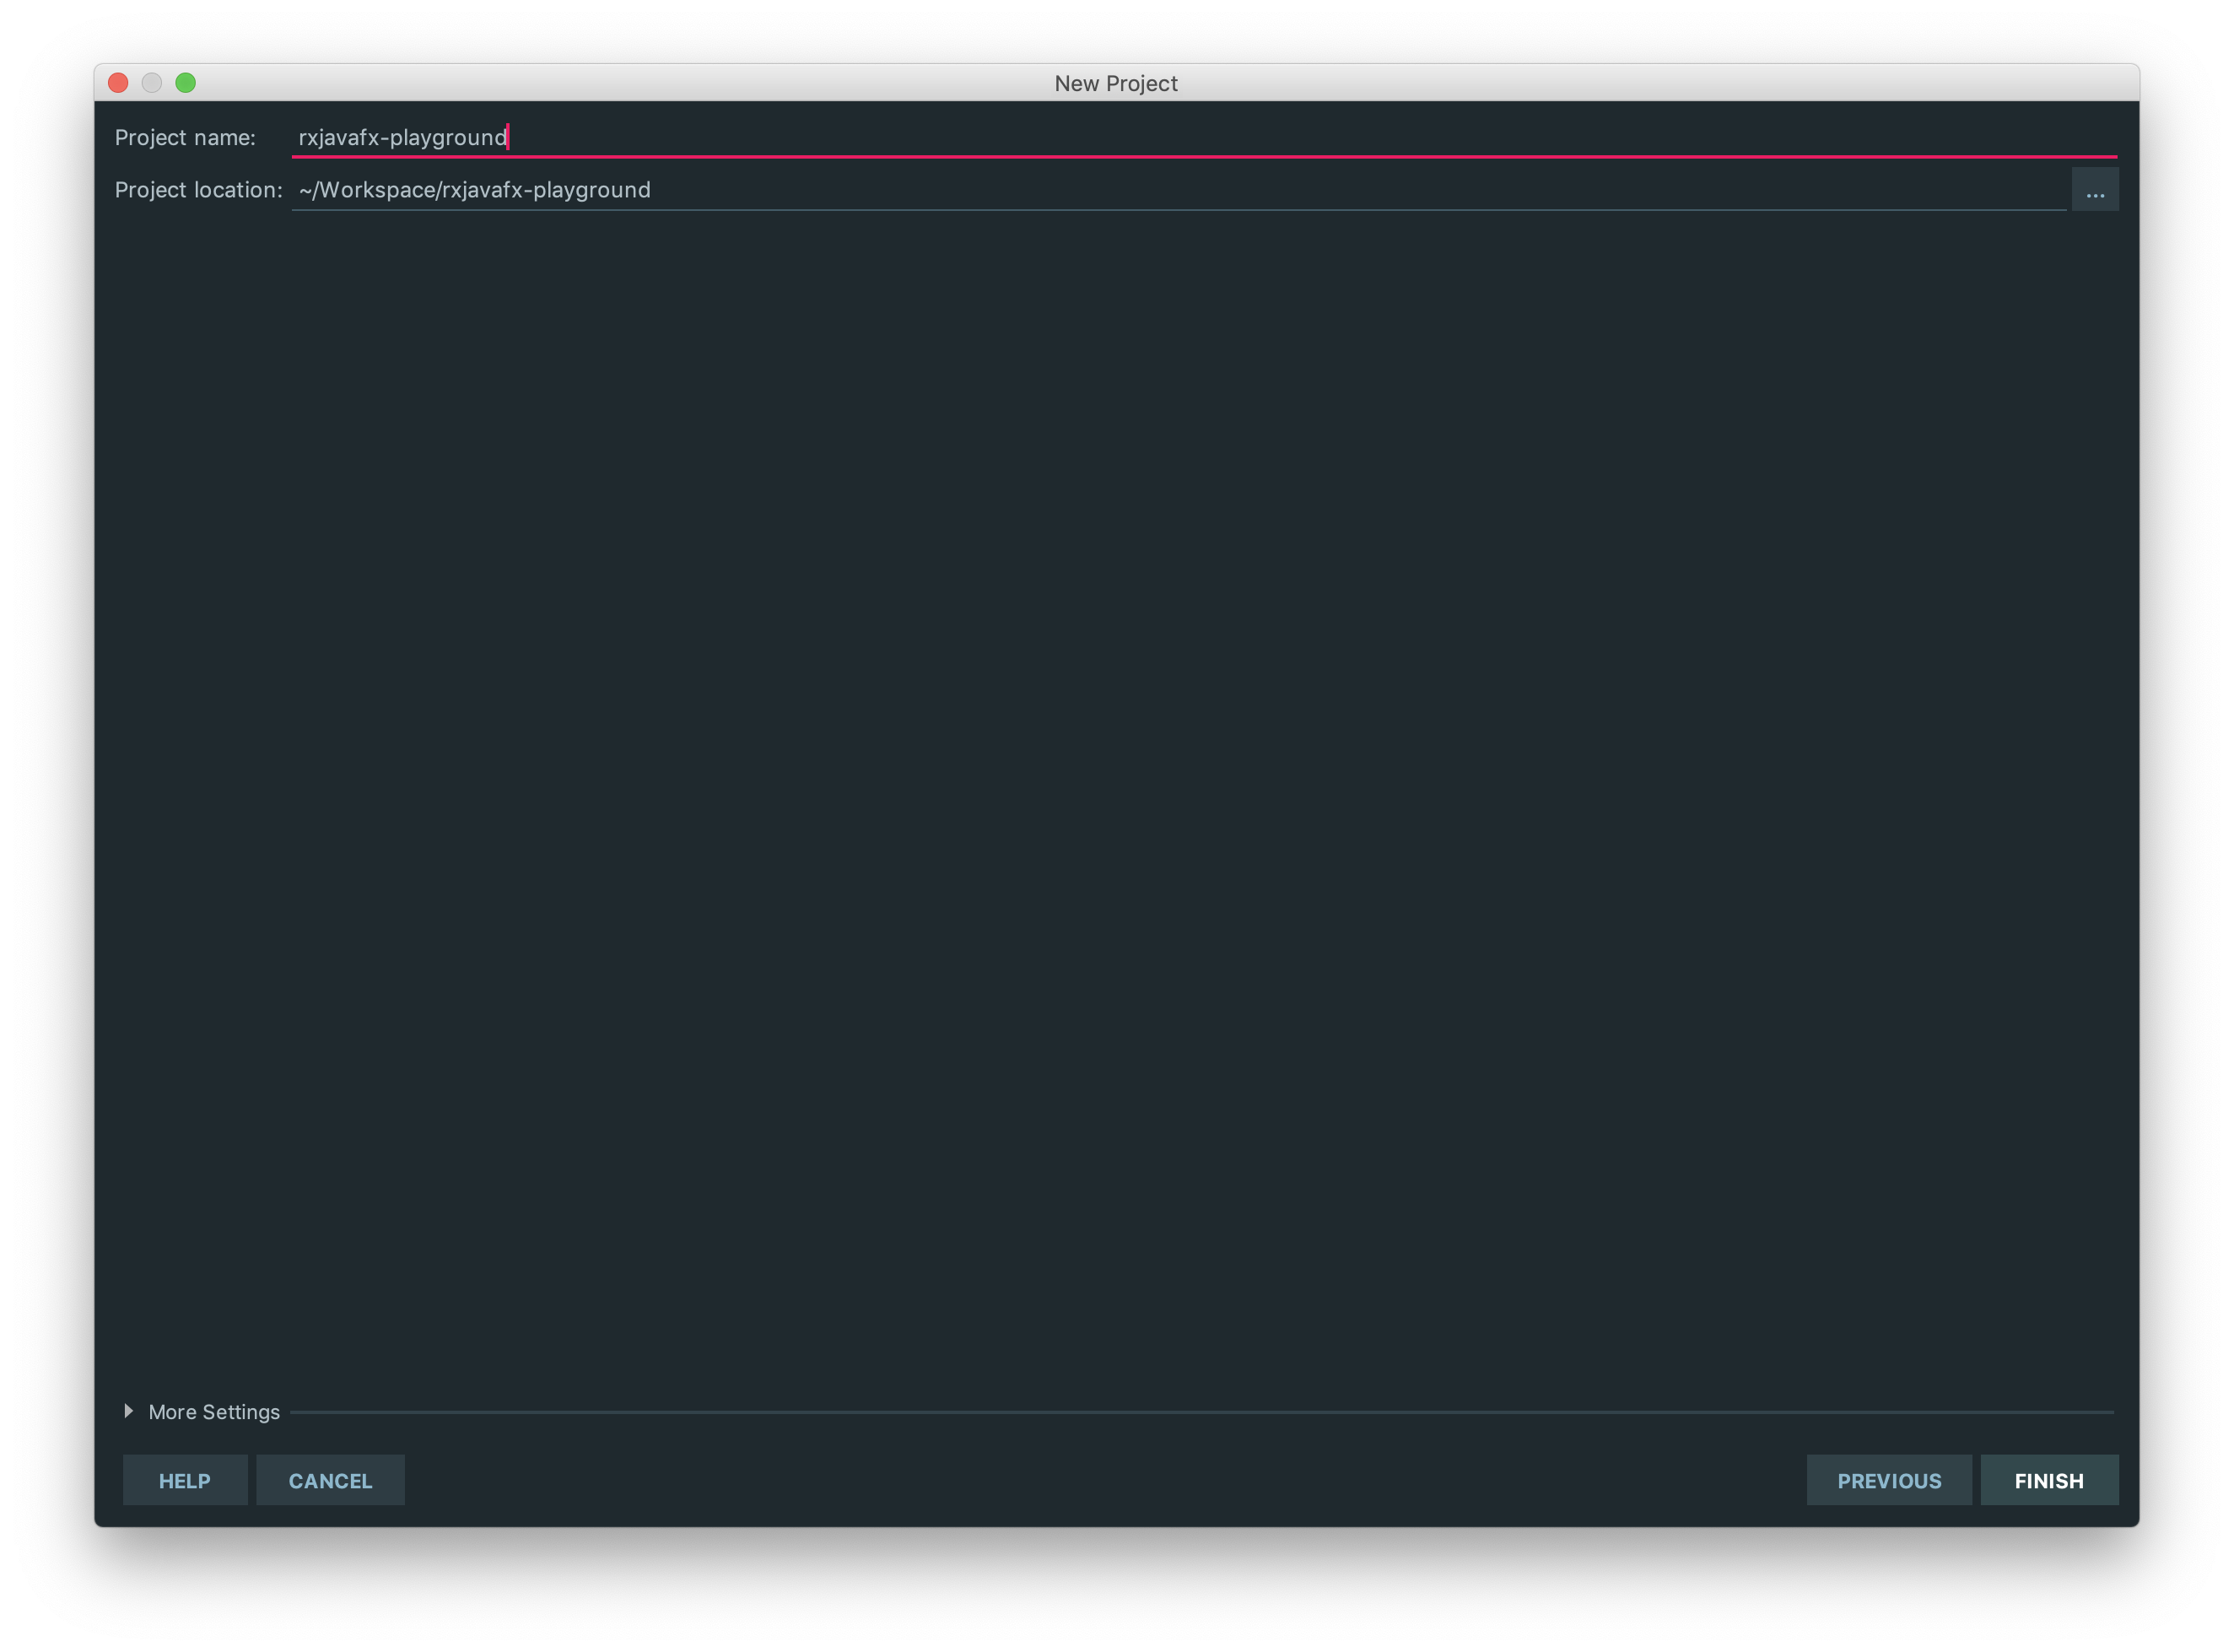 project name: rxjavafx-playground, Project location: ~/Workspace/rxjavafx-playground